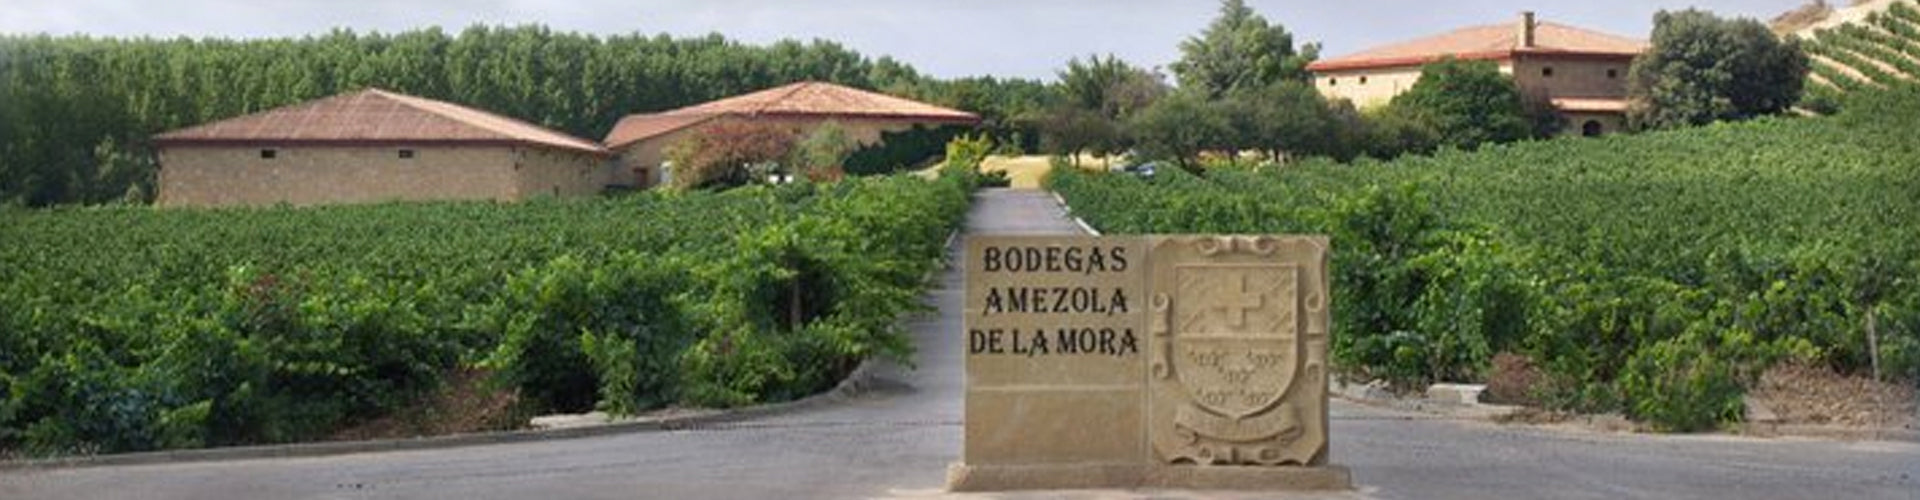 Bodegas Amezola de la Mora Winery Entrance